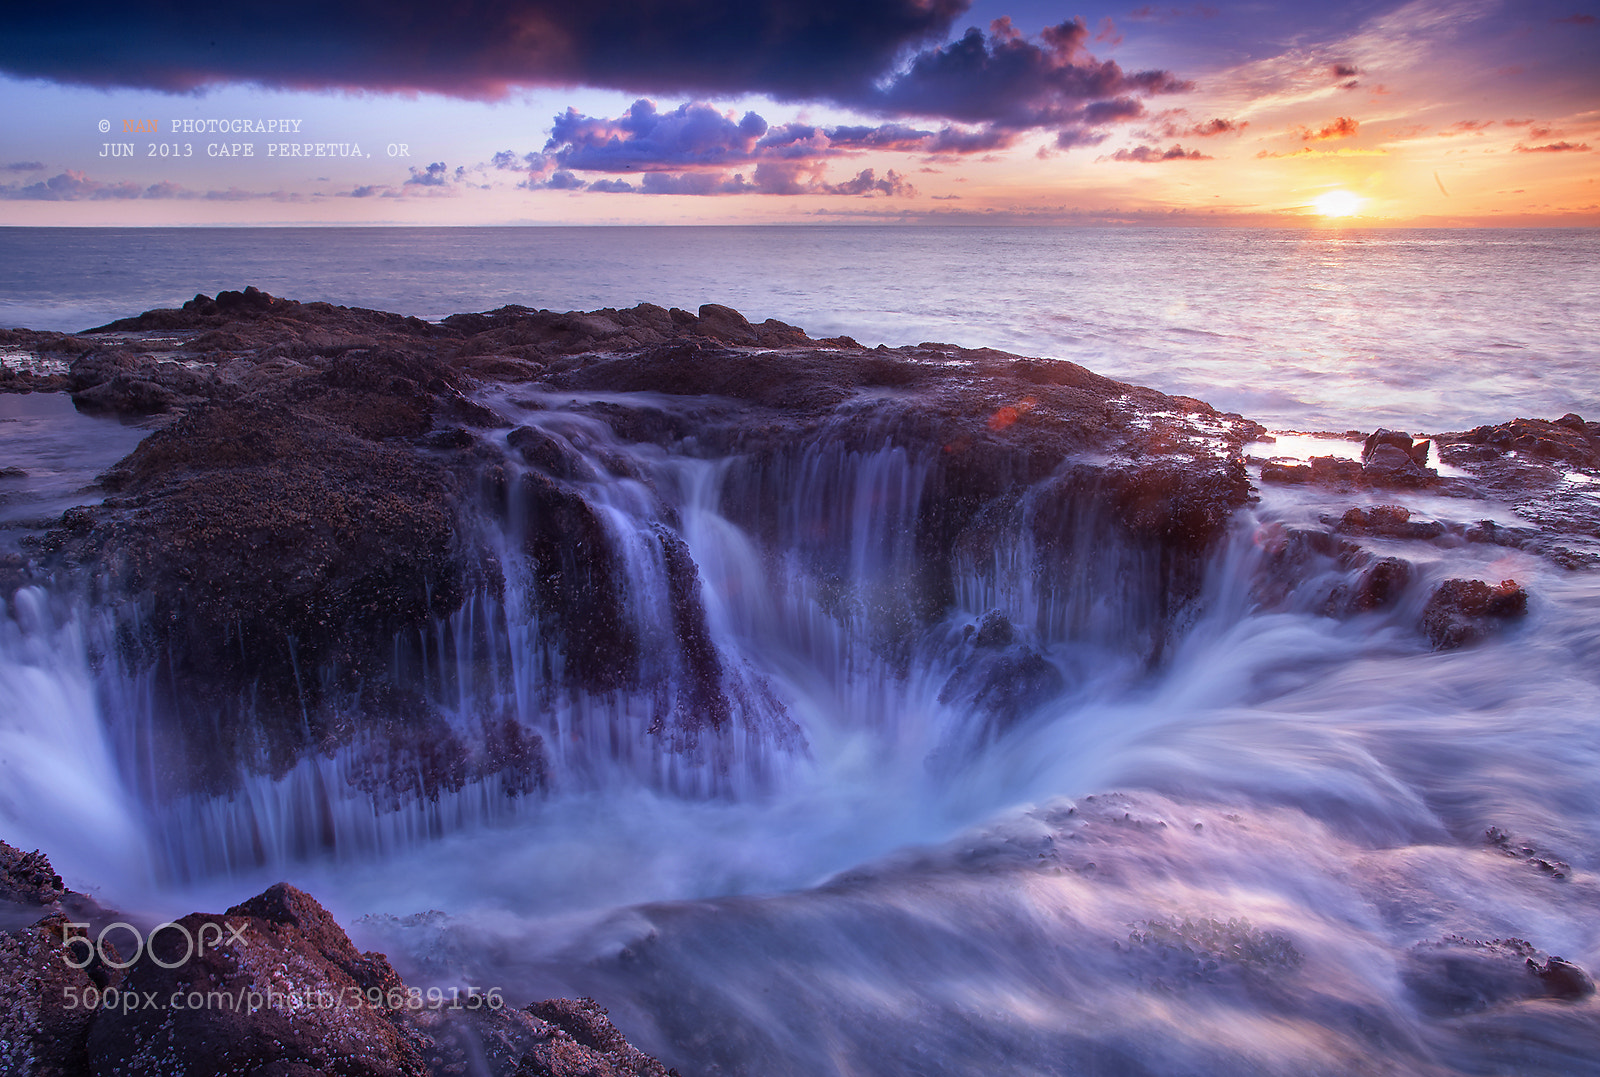 Photograph Sunset Thor's Well by Nan Zhong on 500px